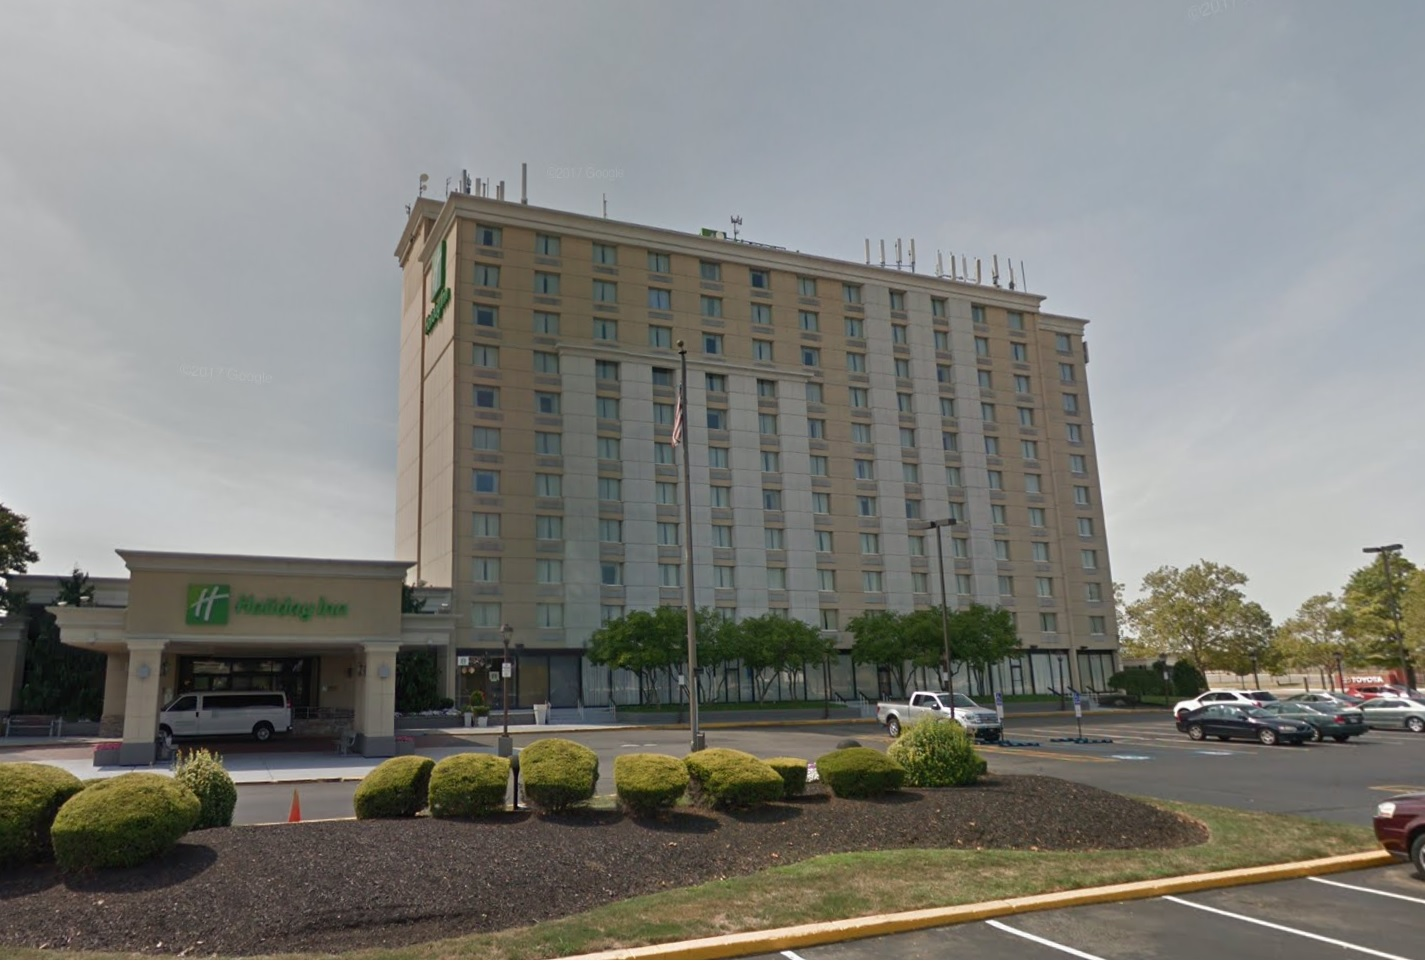 The Holiday Inn - Before Demolition